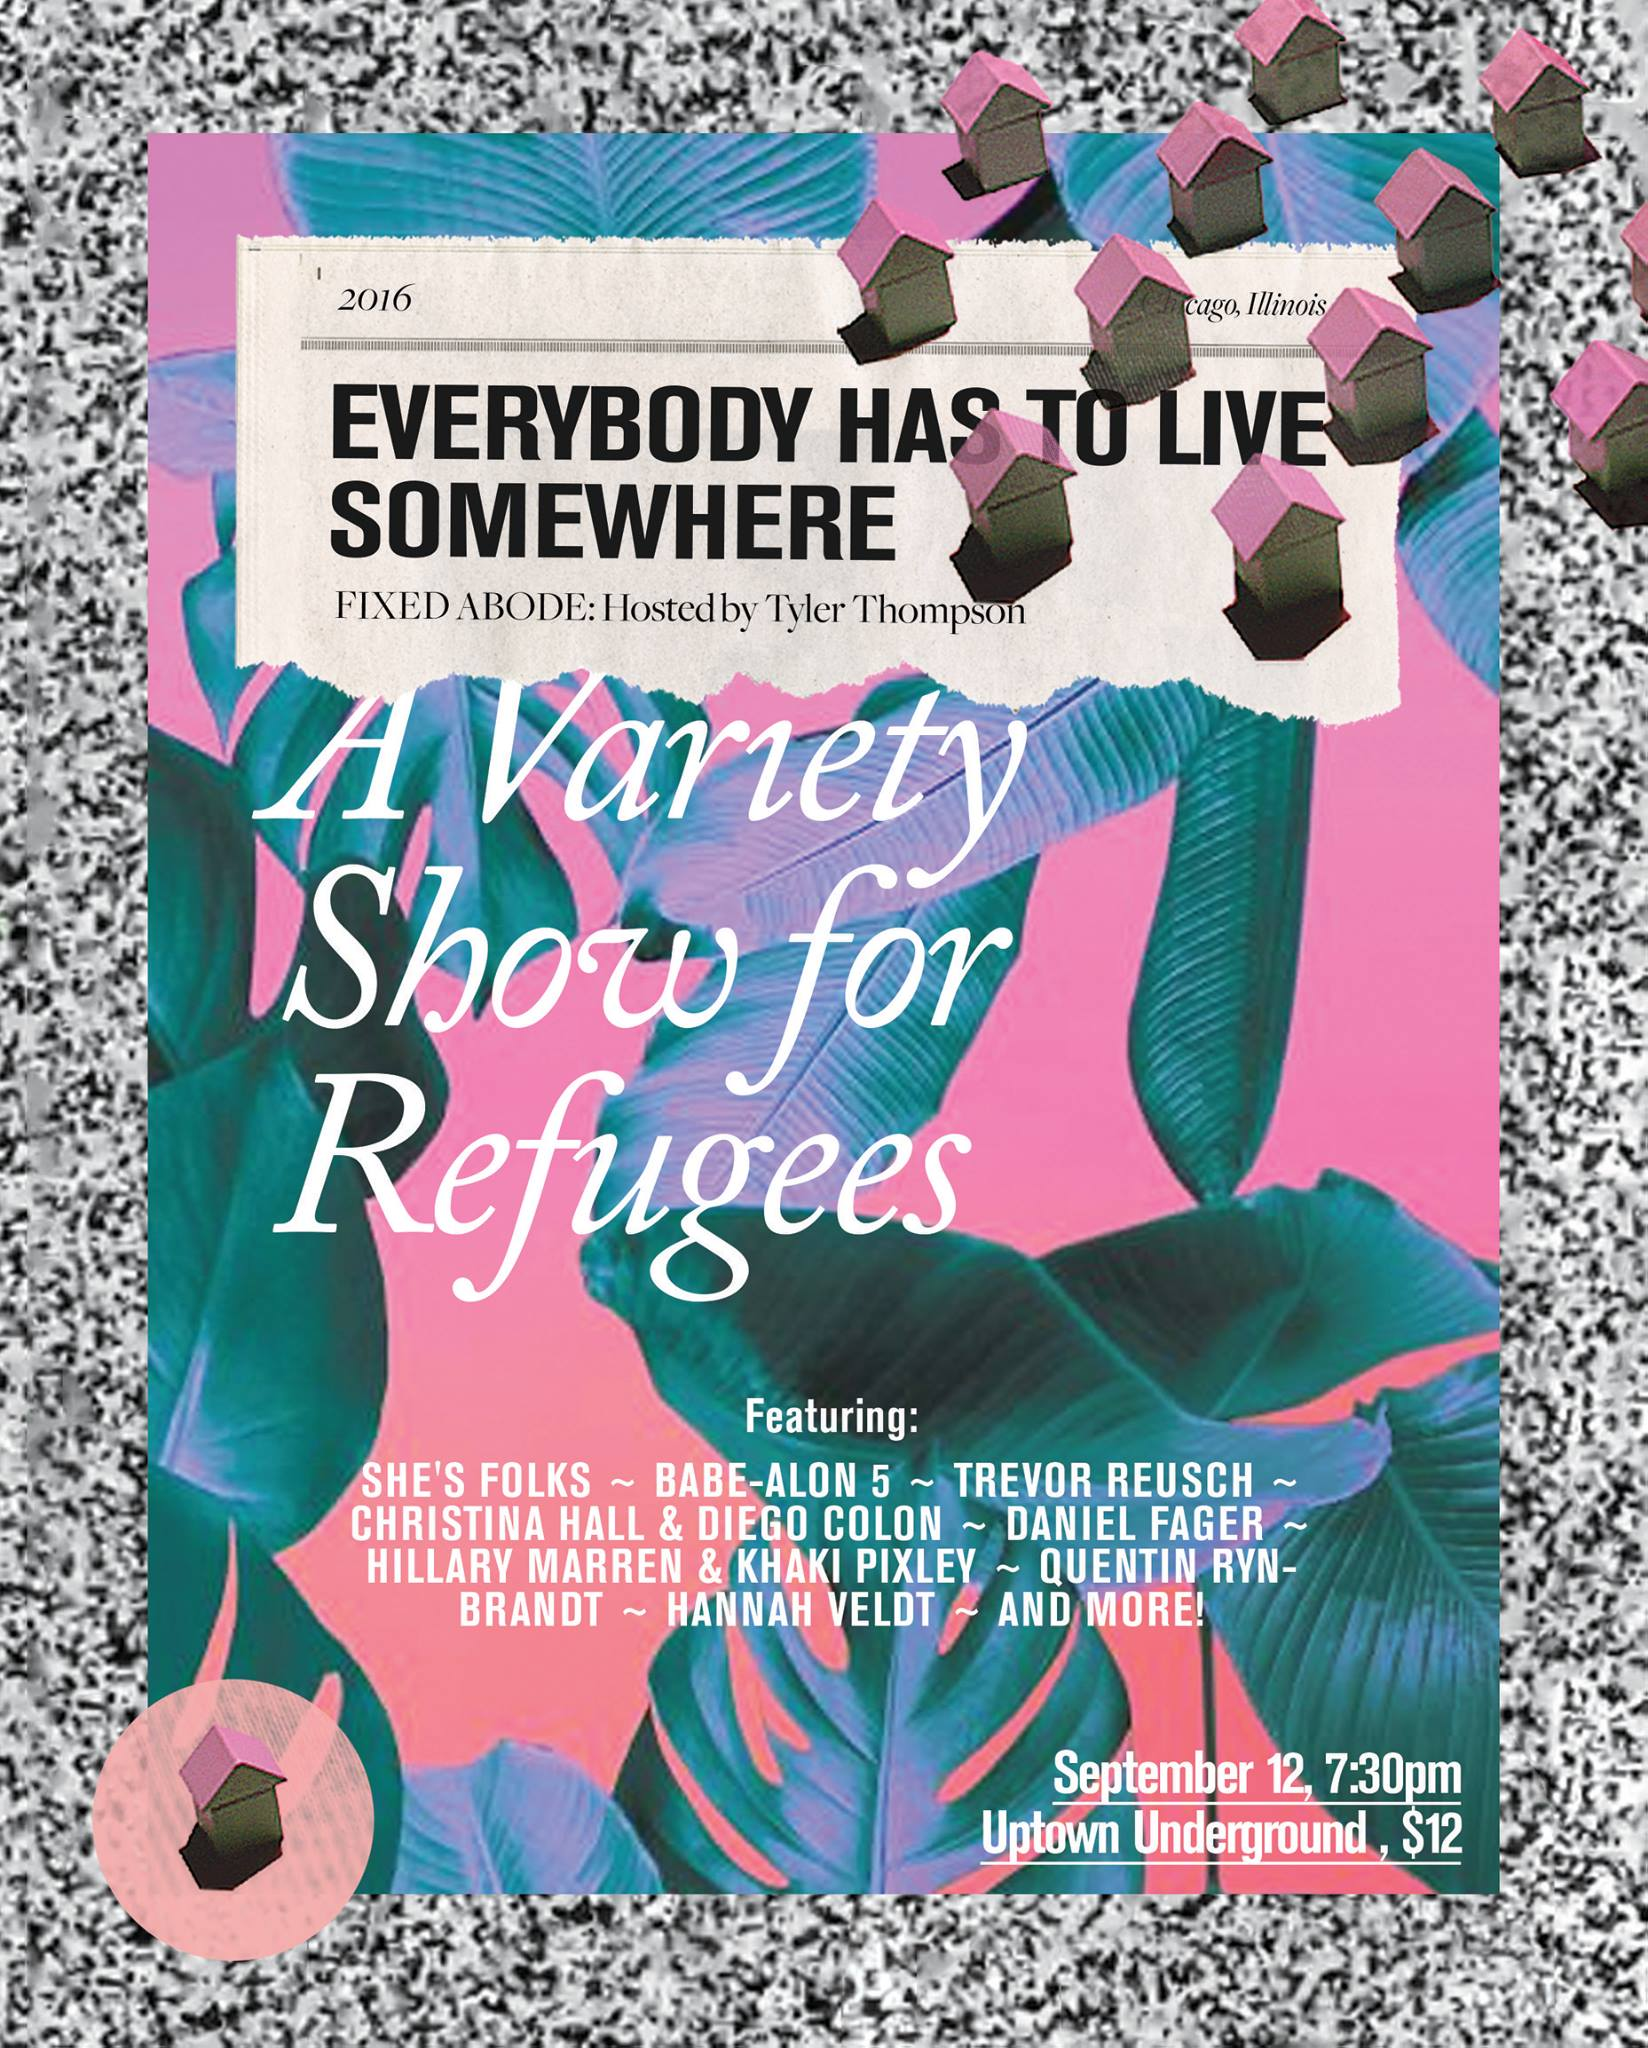 Can't make it to our August 25 & 26 shows? Come see She's Folks along with many other wonderful performers at Uptown Underground in Fixed Abode: A Variety Show for Refugees hosted by She's Folks member and dear friend Tyler Thompson. All proceeds benefit  Loom .